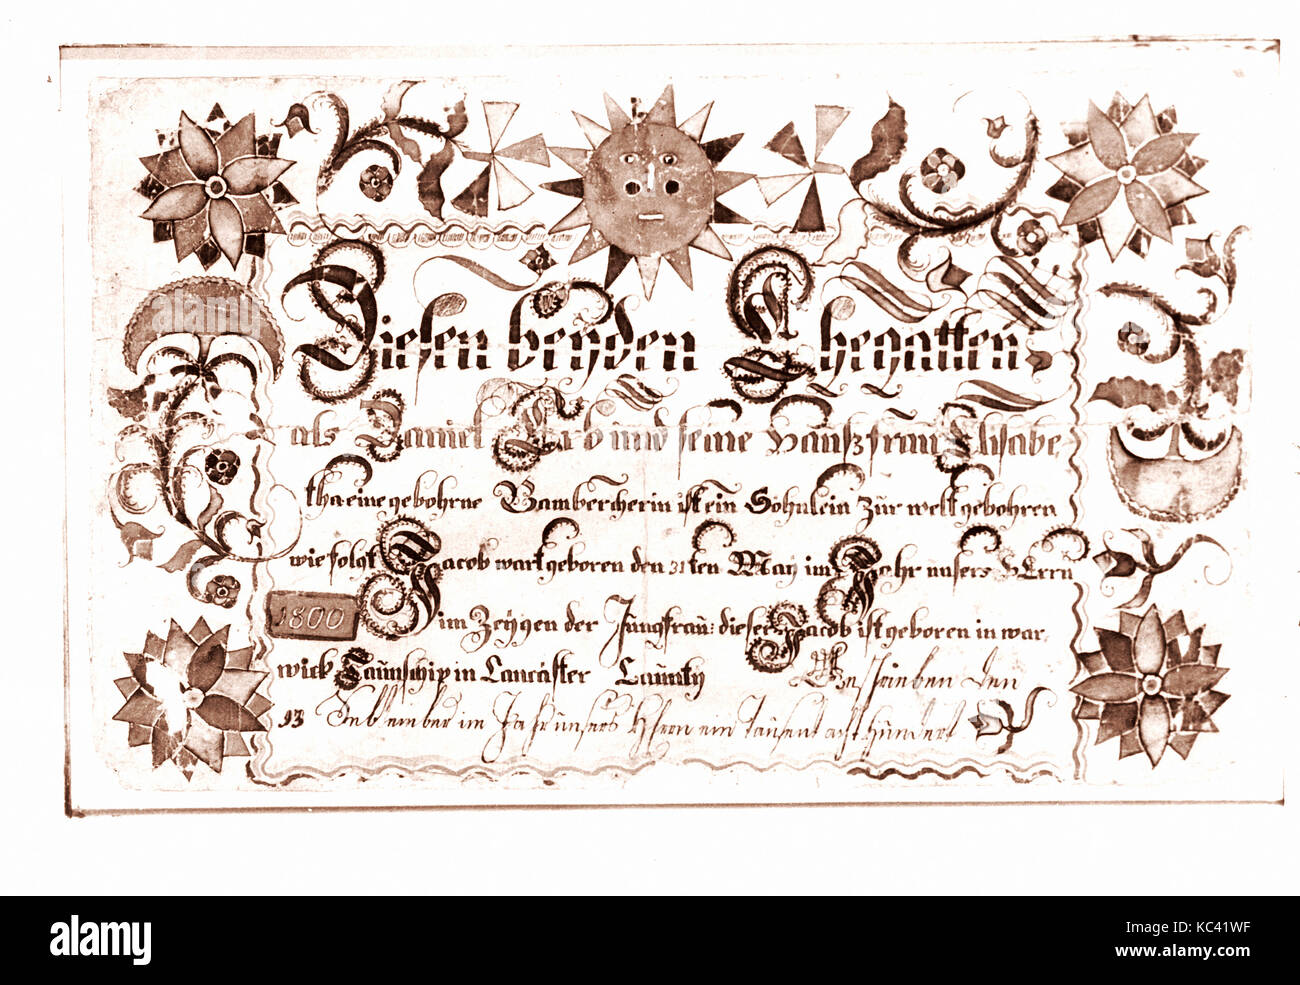 Birth Certificate 1800 Made In Lancaster County Pennsylvania